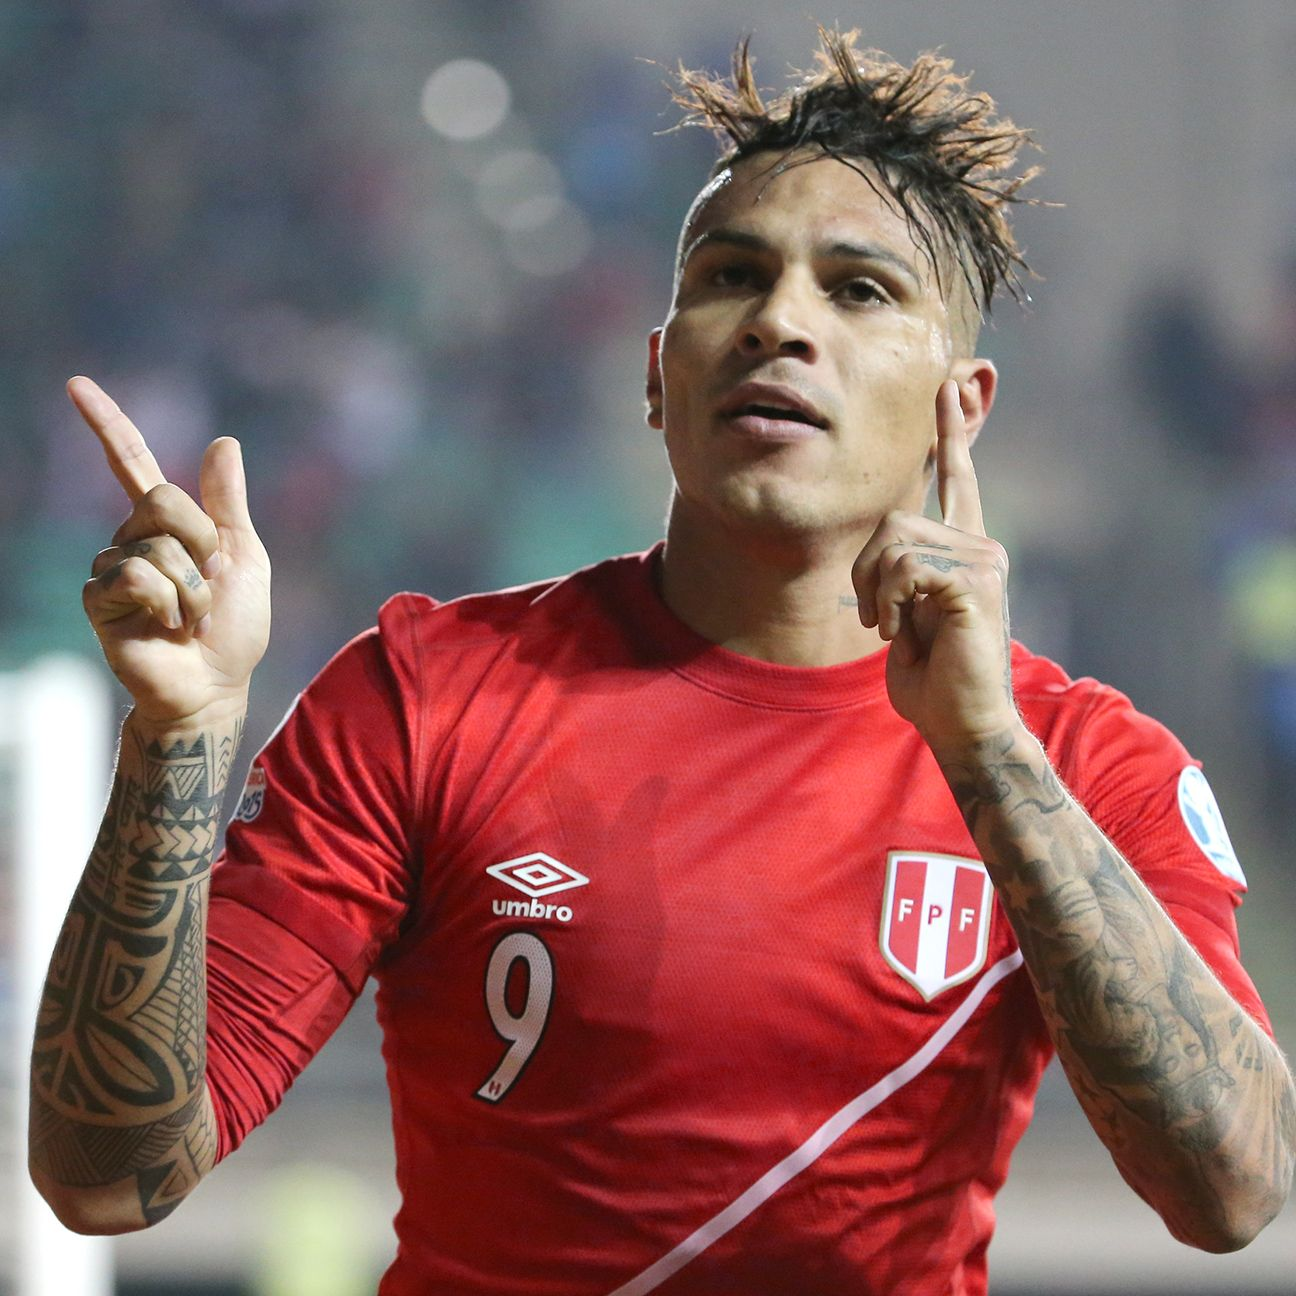 Paolo Guerrero recorded the lone hat trick in the Copa America in Peru's 3-1 quarterfinal win over Bolivia.